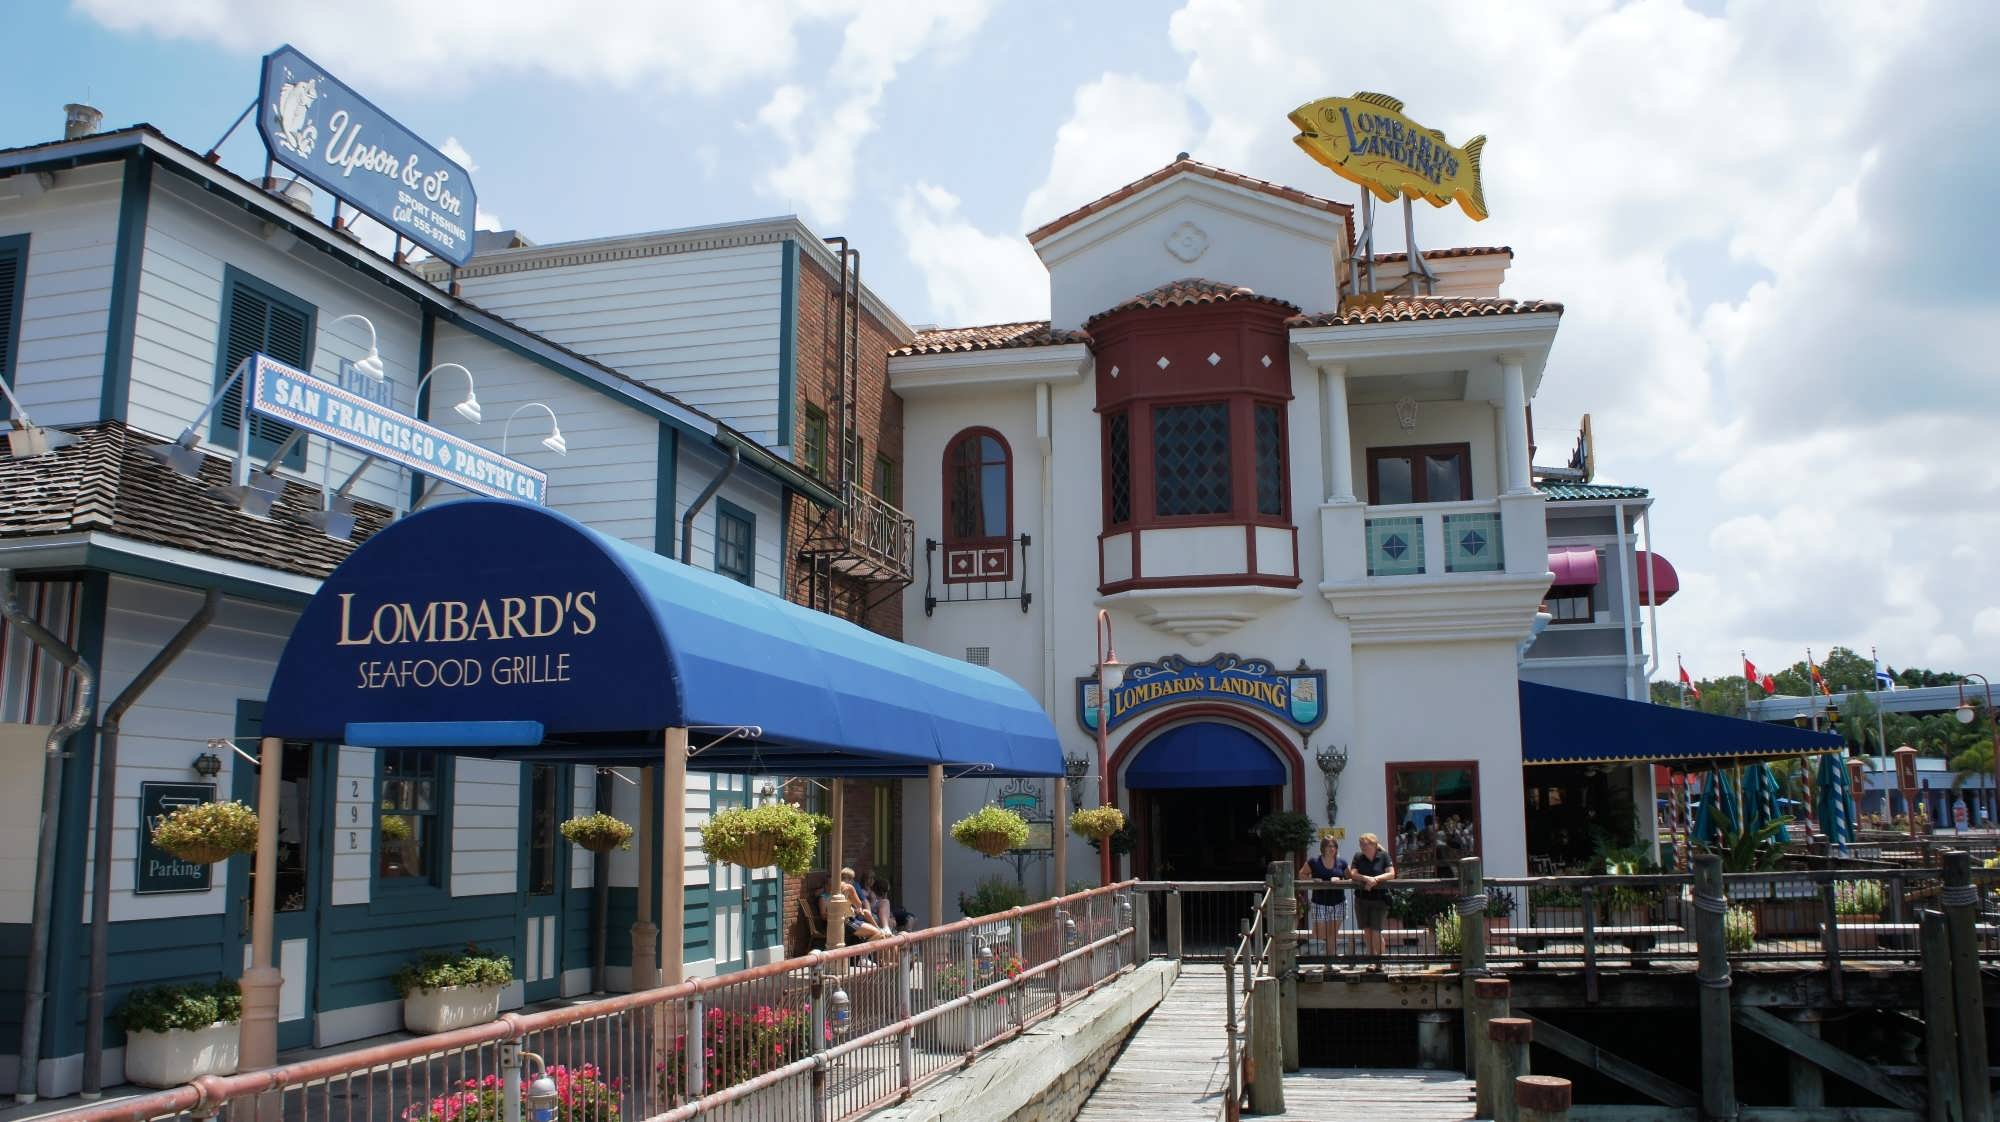 Staying on track in the new year how to eat healthy at universal lombards seafood grille at universal studios florida ccuart Images